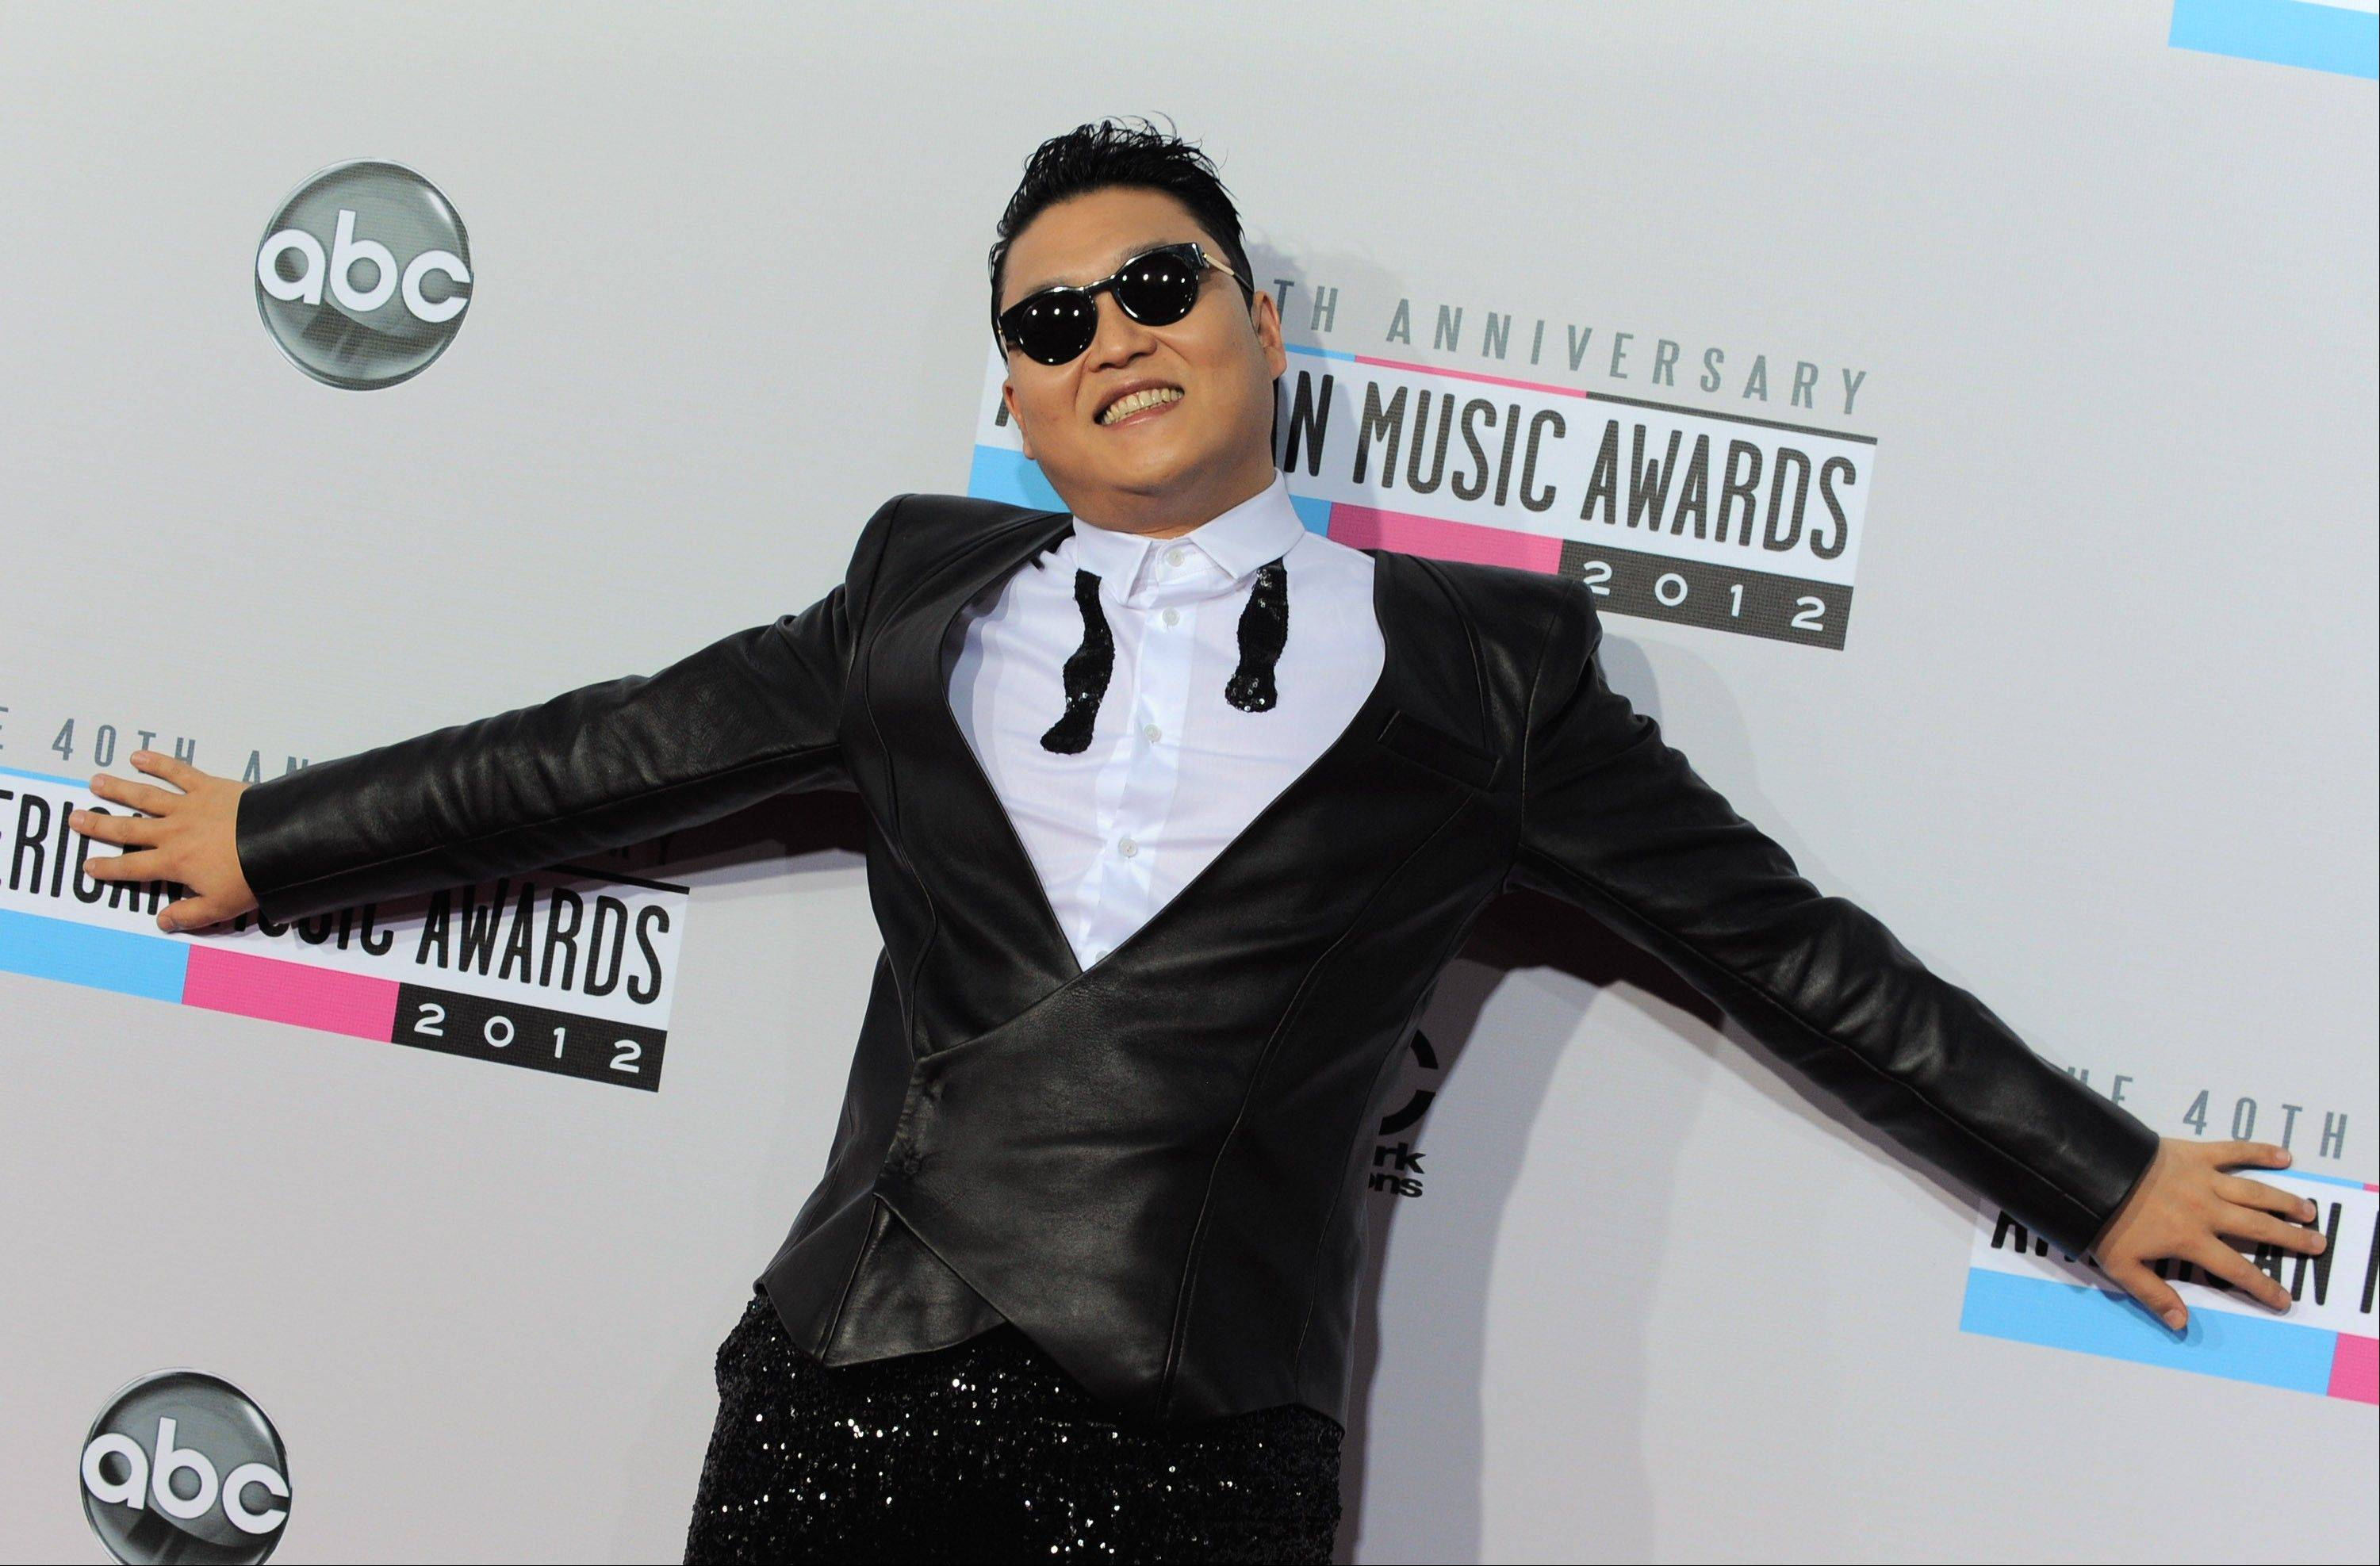 South Korean rapper PSY arrives at the 40th Anniversary American Music Awards on Sunday, Nov. 18, 2012, in Los Angeles.